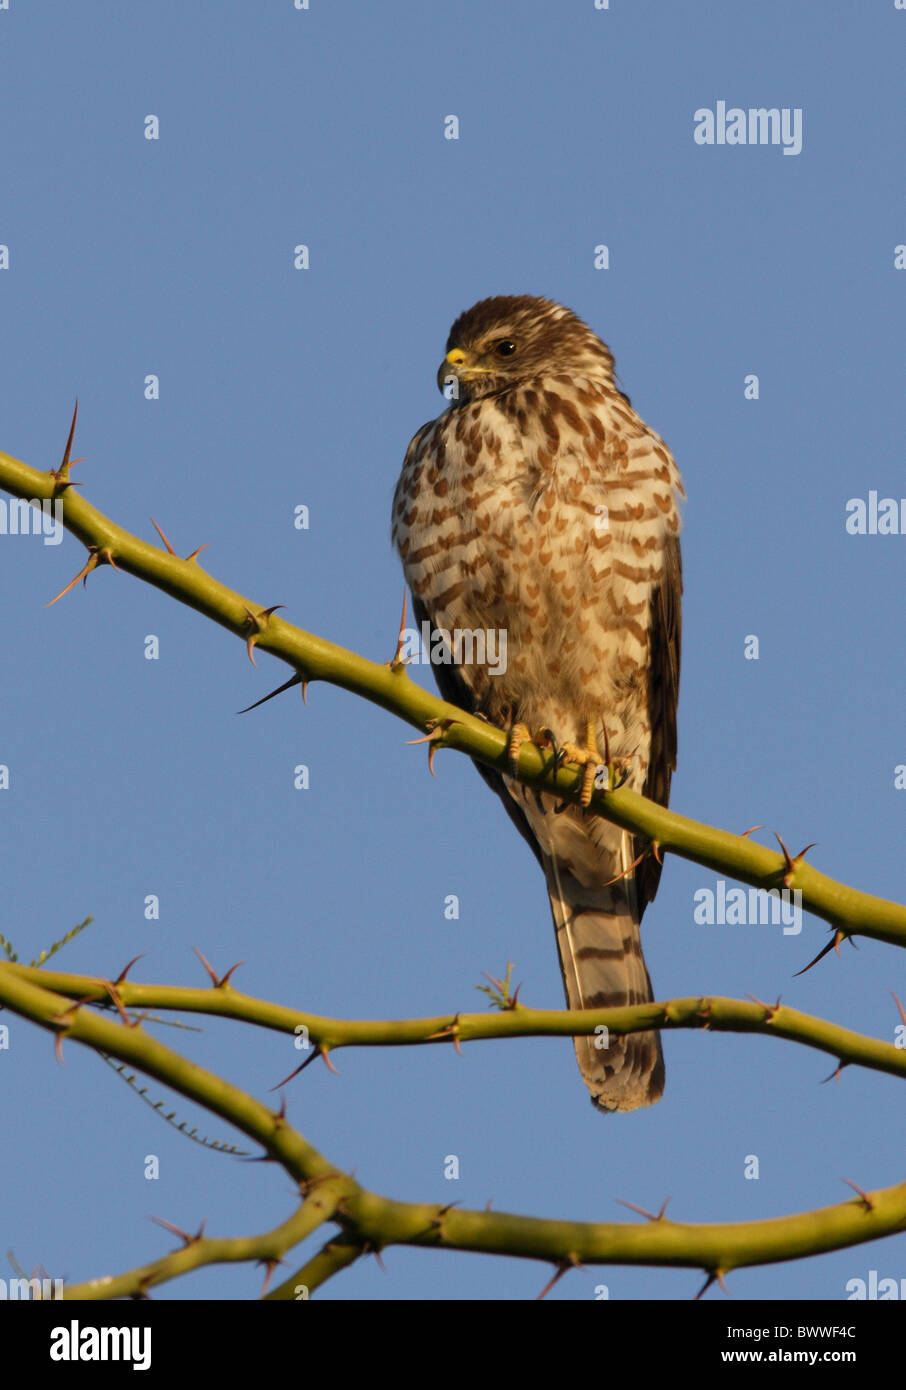 Levant Sparrowhawk (Accipiter brevipes) immature, perched in thorn tree, Sharm-El-Sheikh, Sinai Peninsula, Egypt, - Stock Image